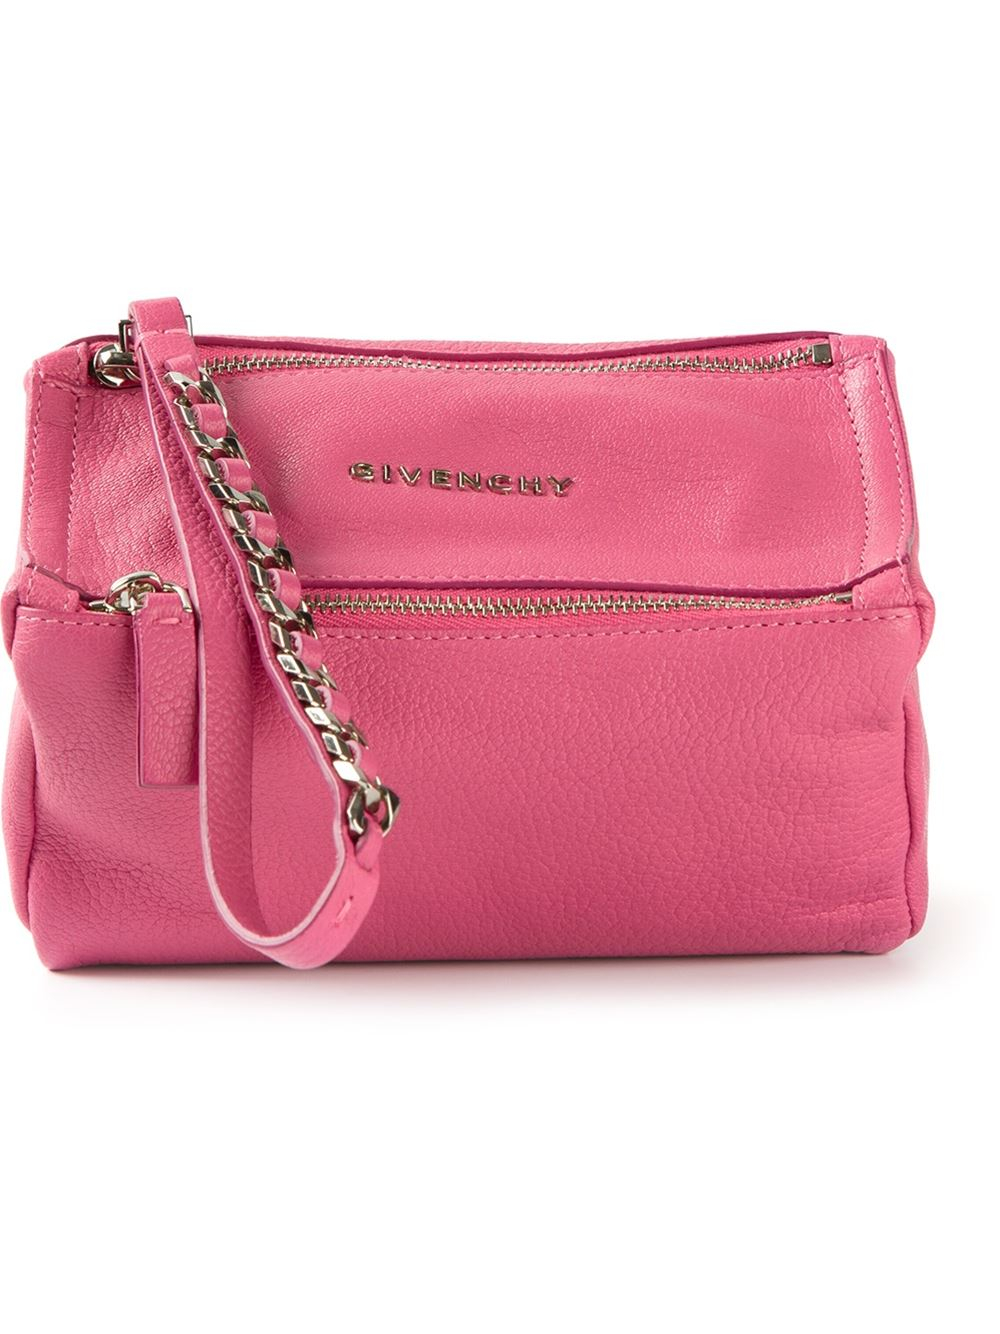 6e6f3d3074f1 Givenchy Pandora Clutch in Pink - Lyst